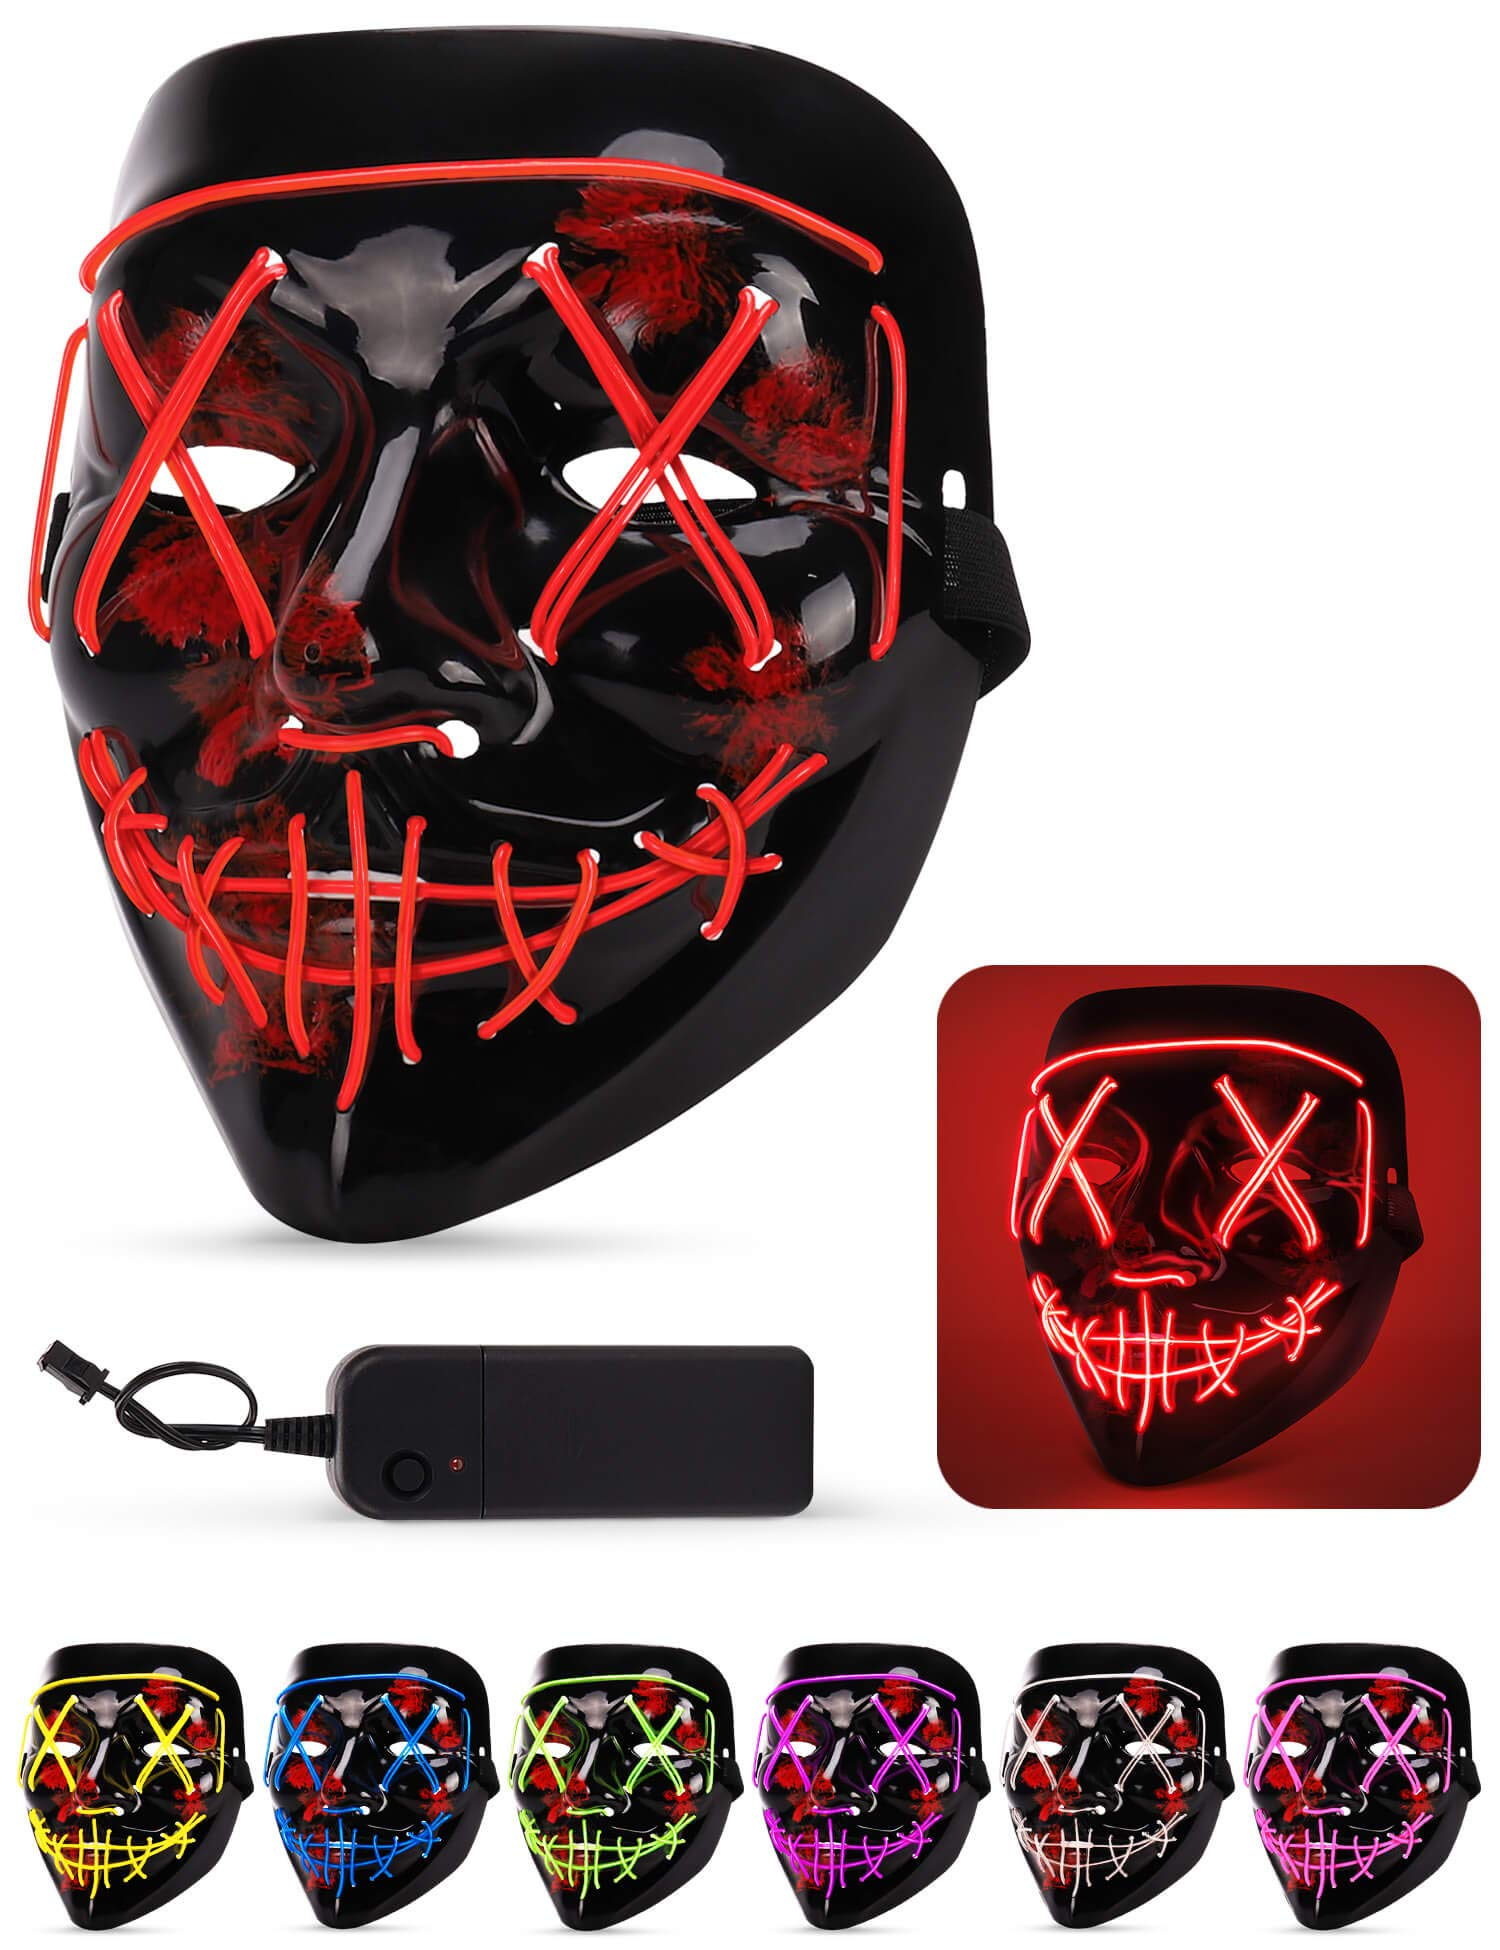 Lizber Halloween Mask, Led Light Up Mask with Neon Wires, Adjustable Scary Masquerade Glow Mask for Festivals, Parties, Carnivals and Raves, Glowing Mask for Men, Women, Kids, Jacinth Red by Lizber